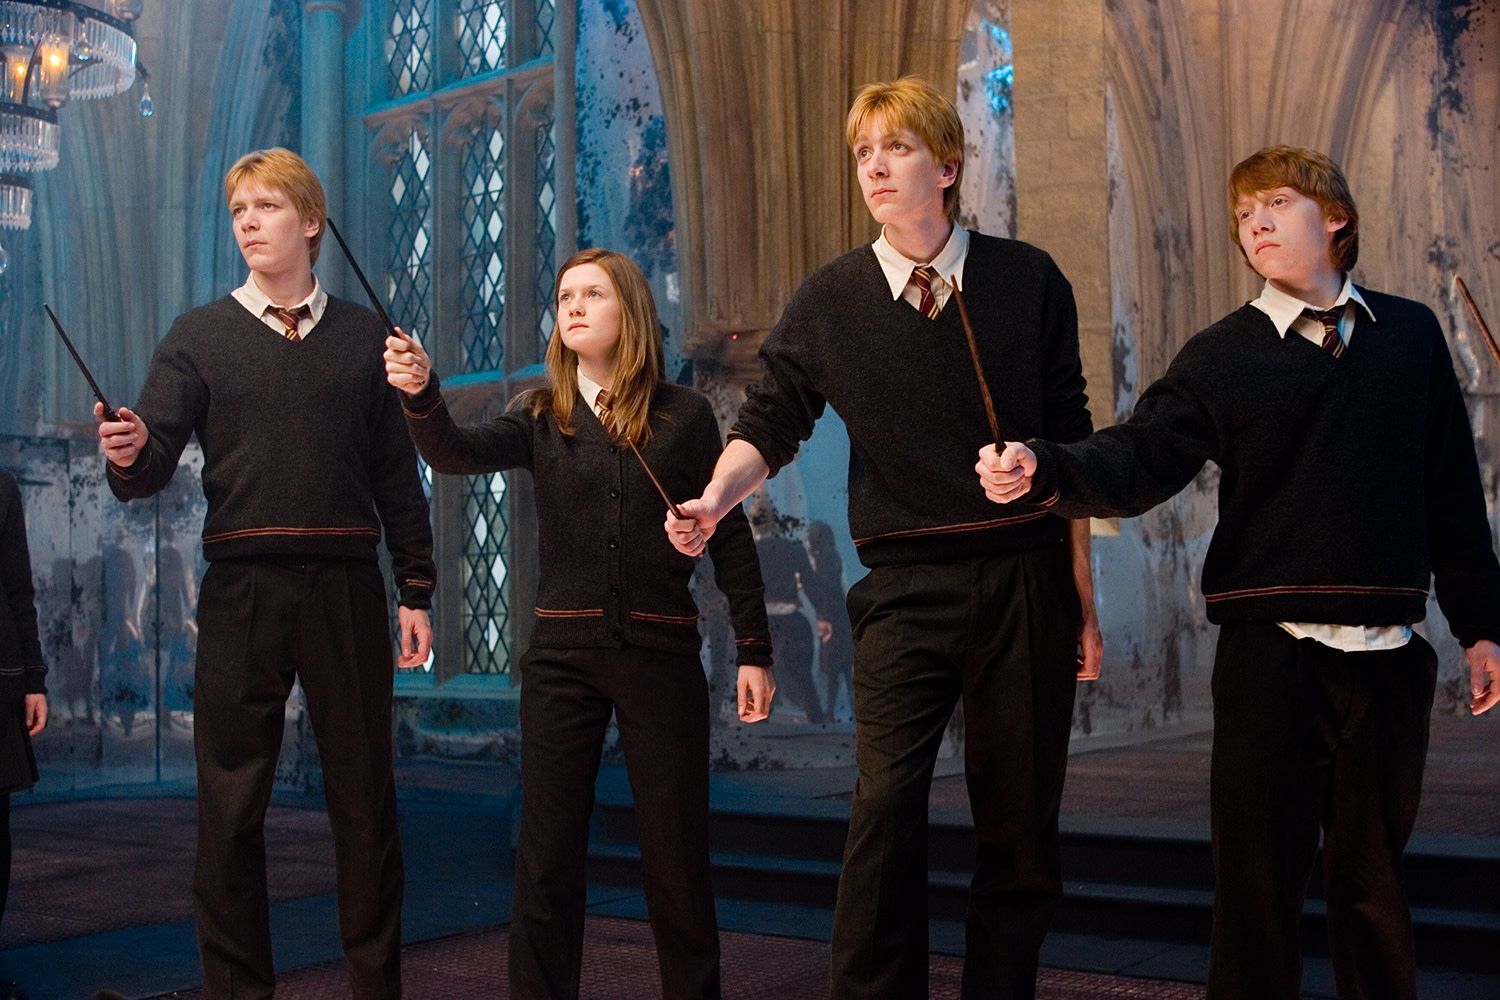 WB-HP-F5-order-of-phoenix-weasley-siblings-room-of-requirement